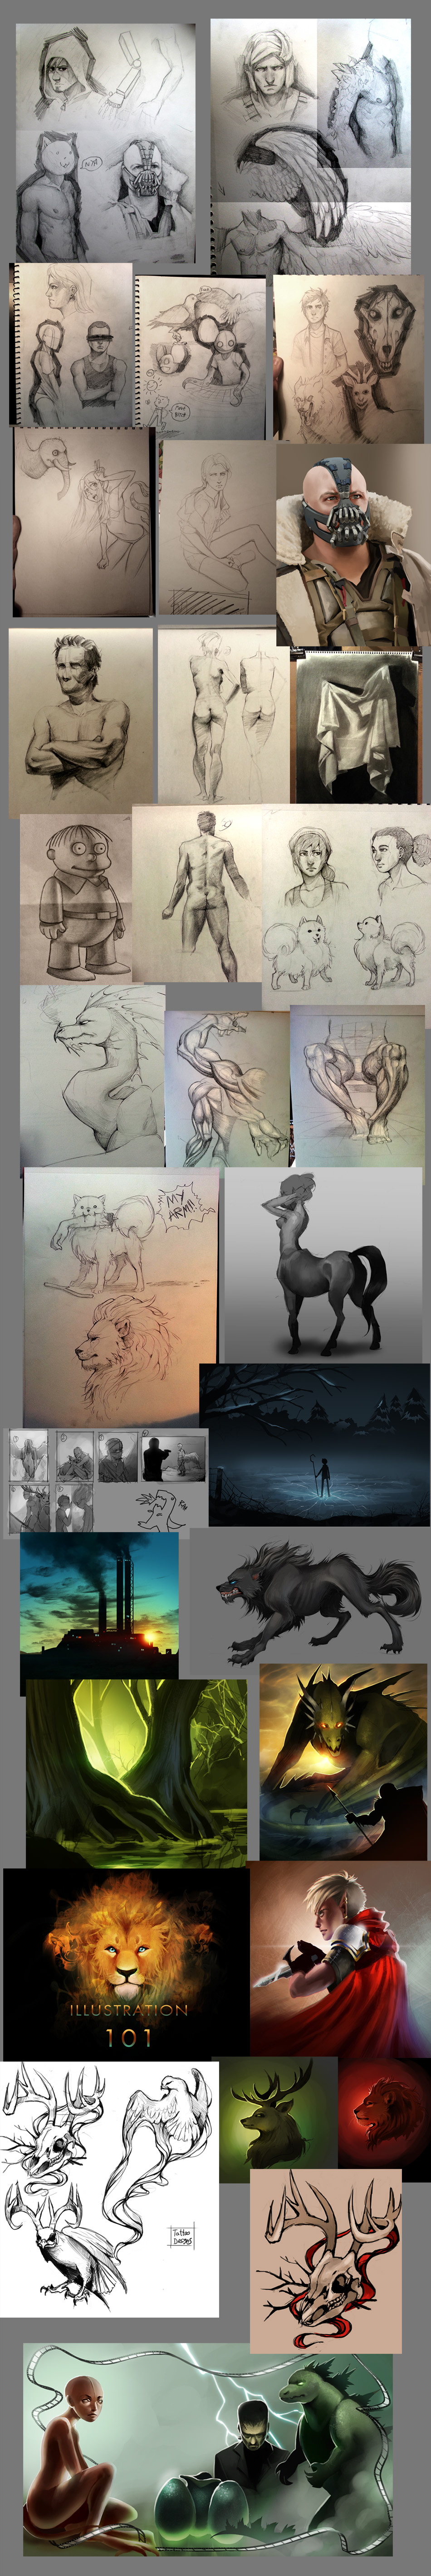 sketchdump by Detkef